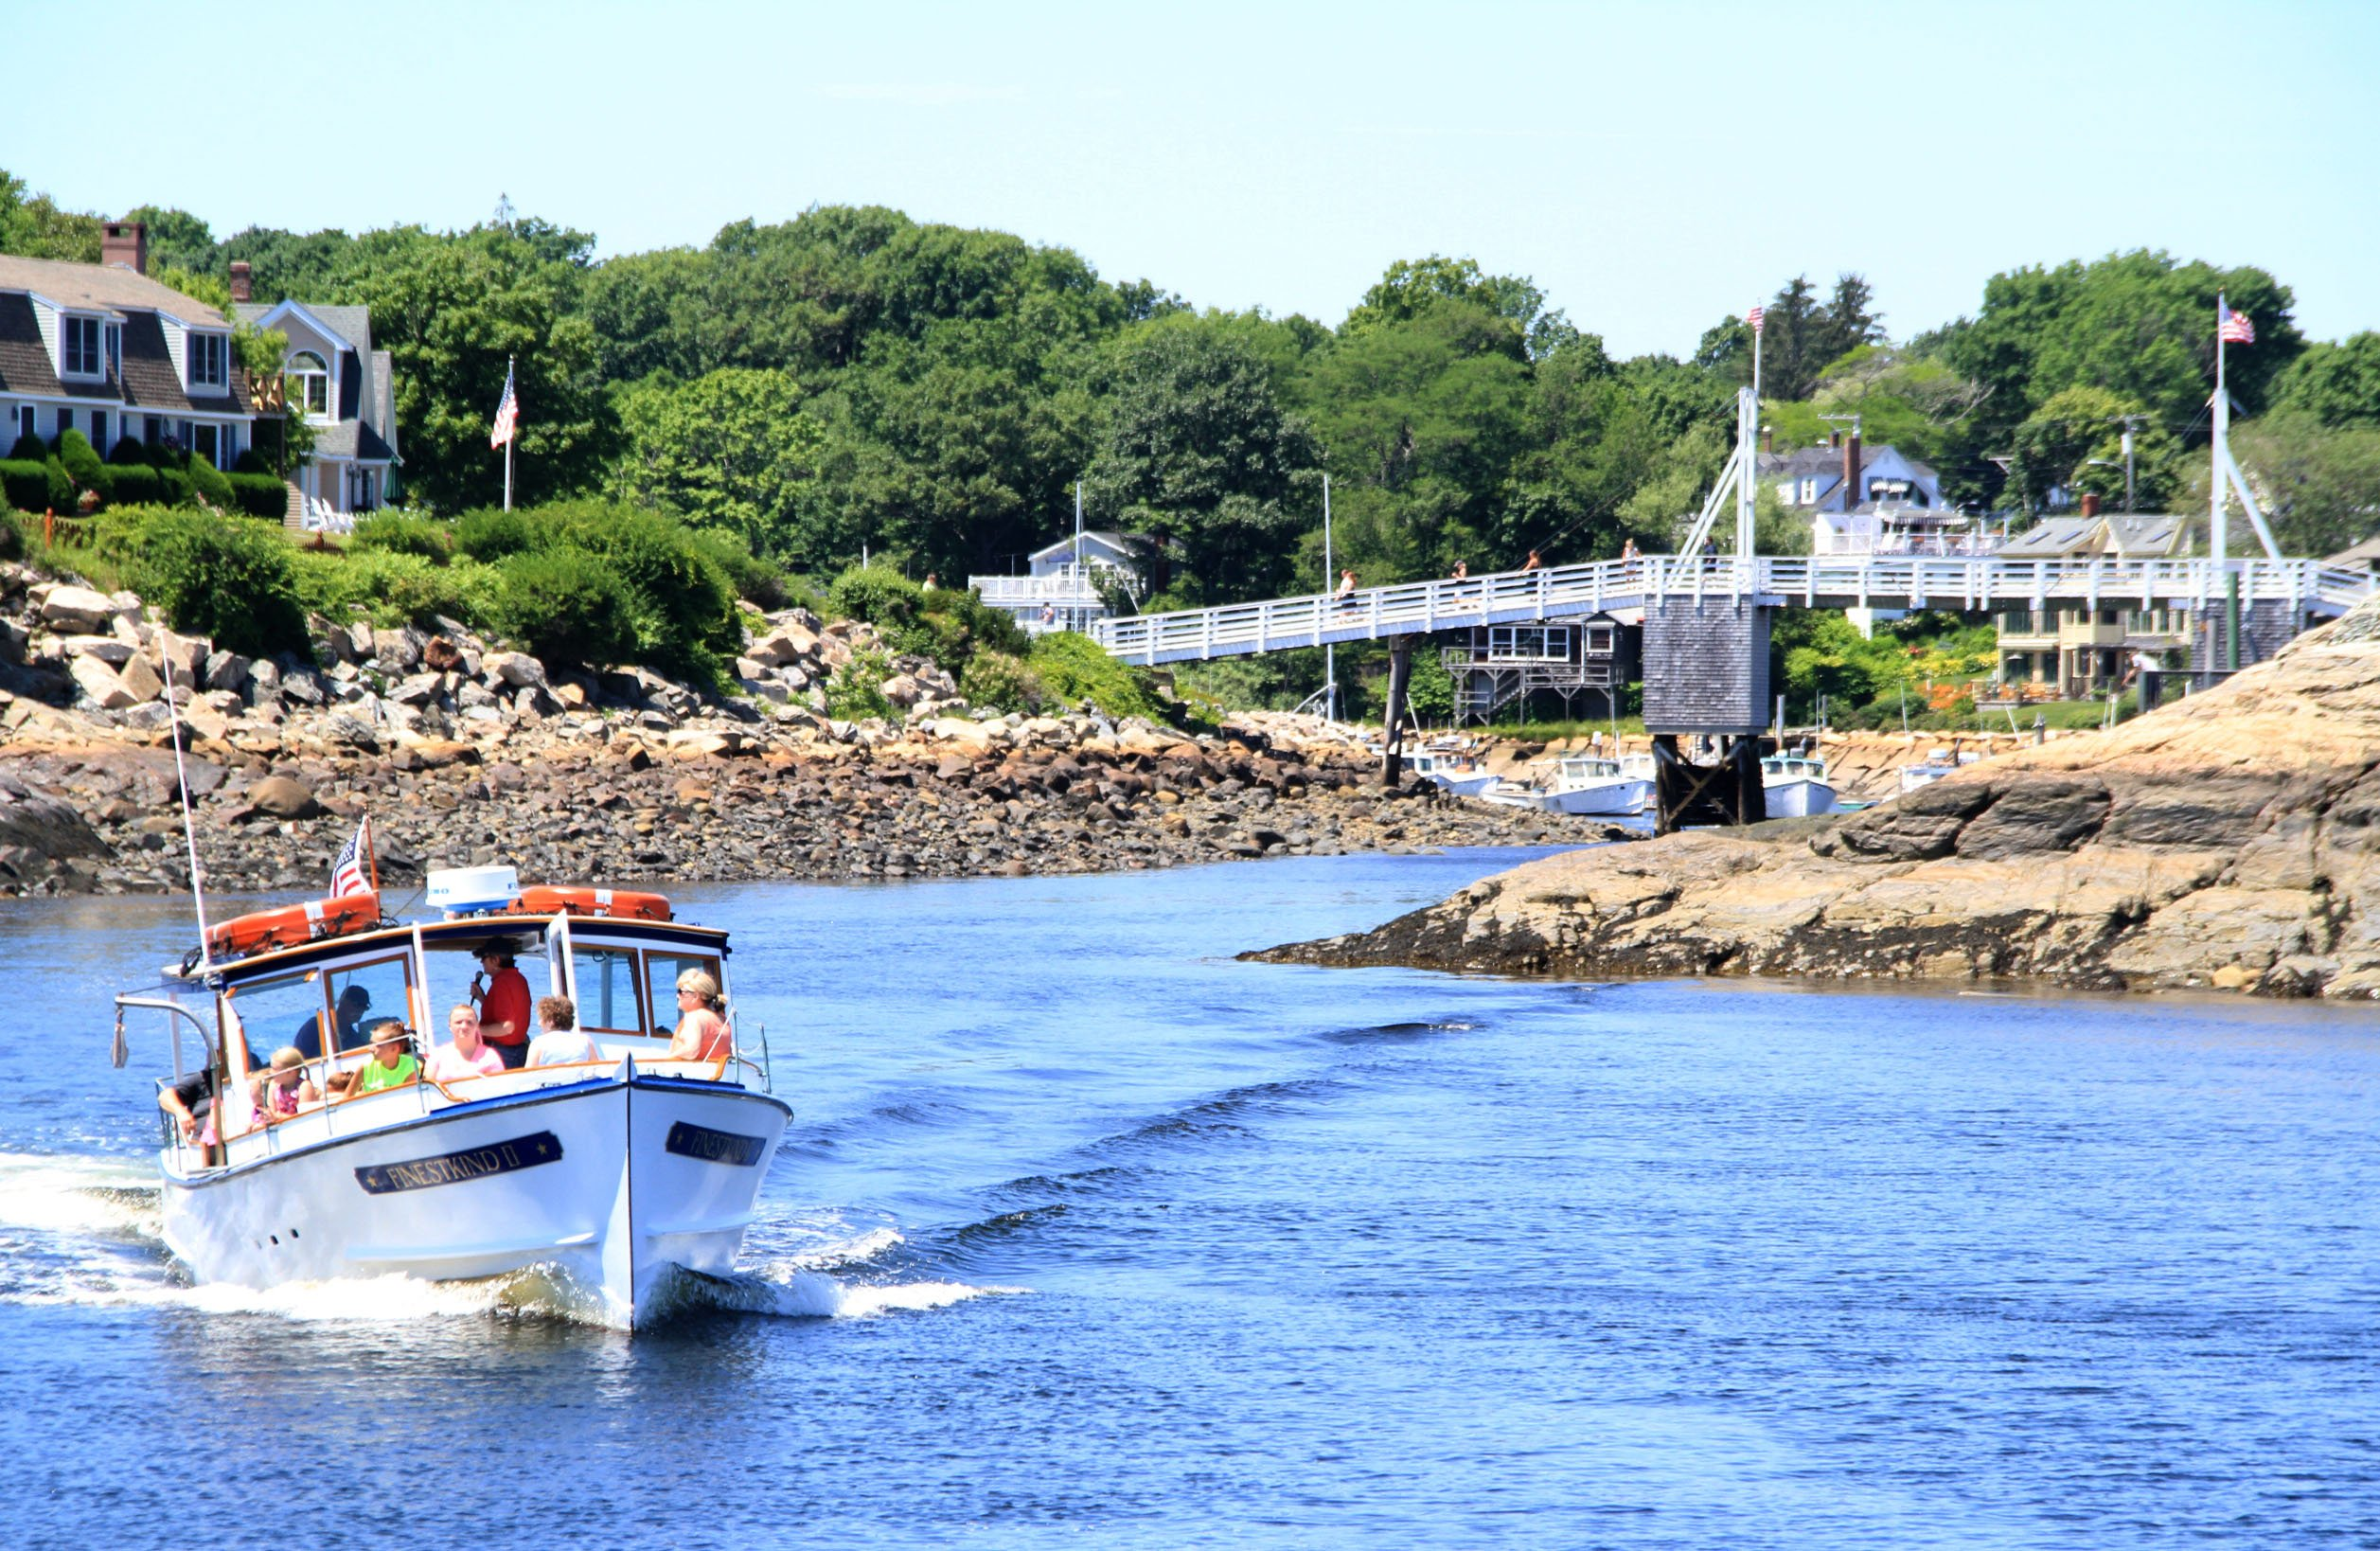 Perkins Cove Boat Tour and Famous Footbridge